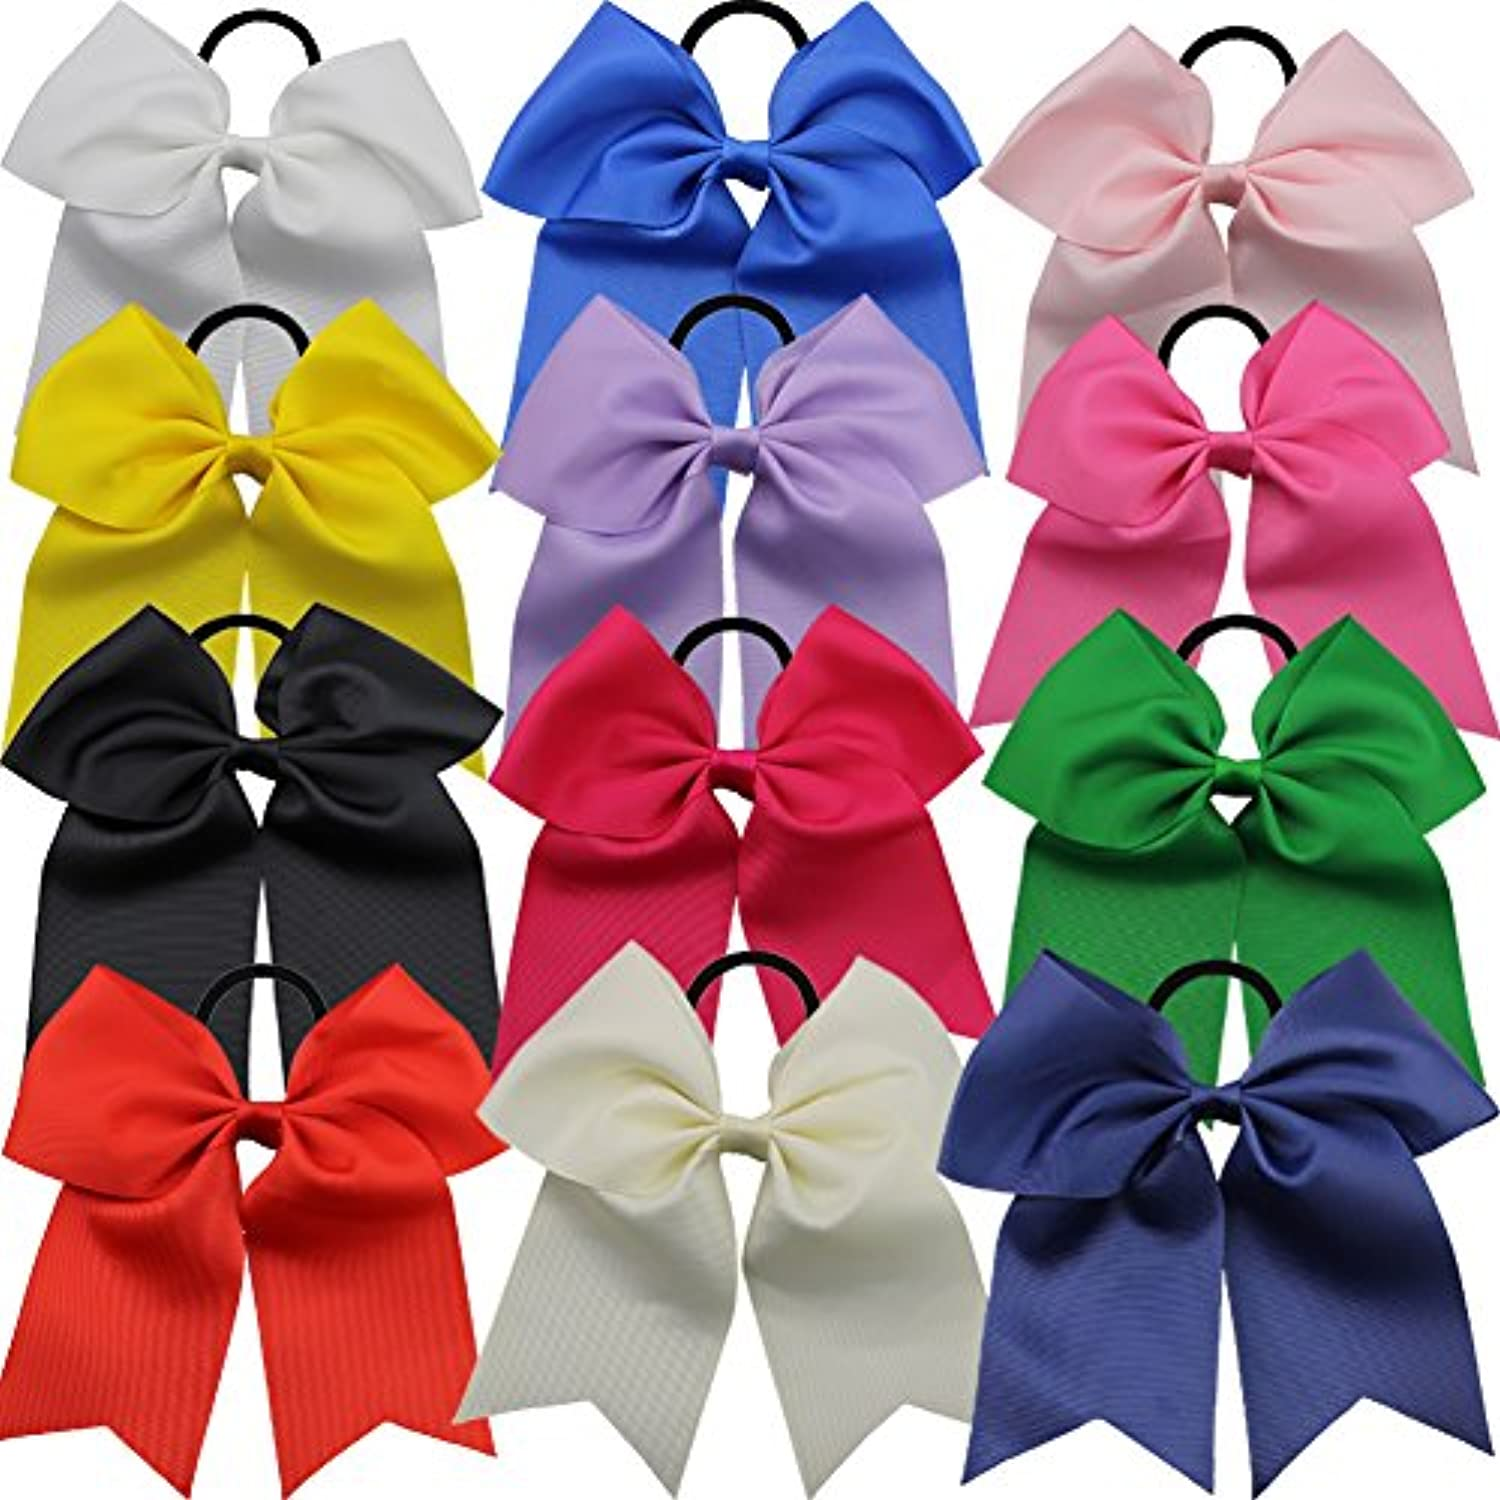 (12pcs 18cm Large Cheer Hair Bows With Ponytails) - QtGirl 12pcs 18cm Baby Girls Large Cheer Hair Bows Mix Colours with Ponytail Holder Elastic Hair Ties for High School College Cheerleading